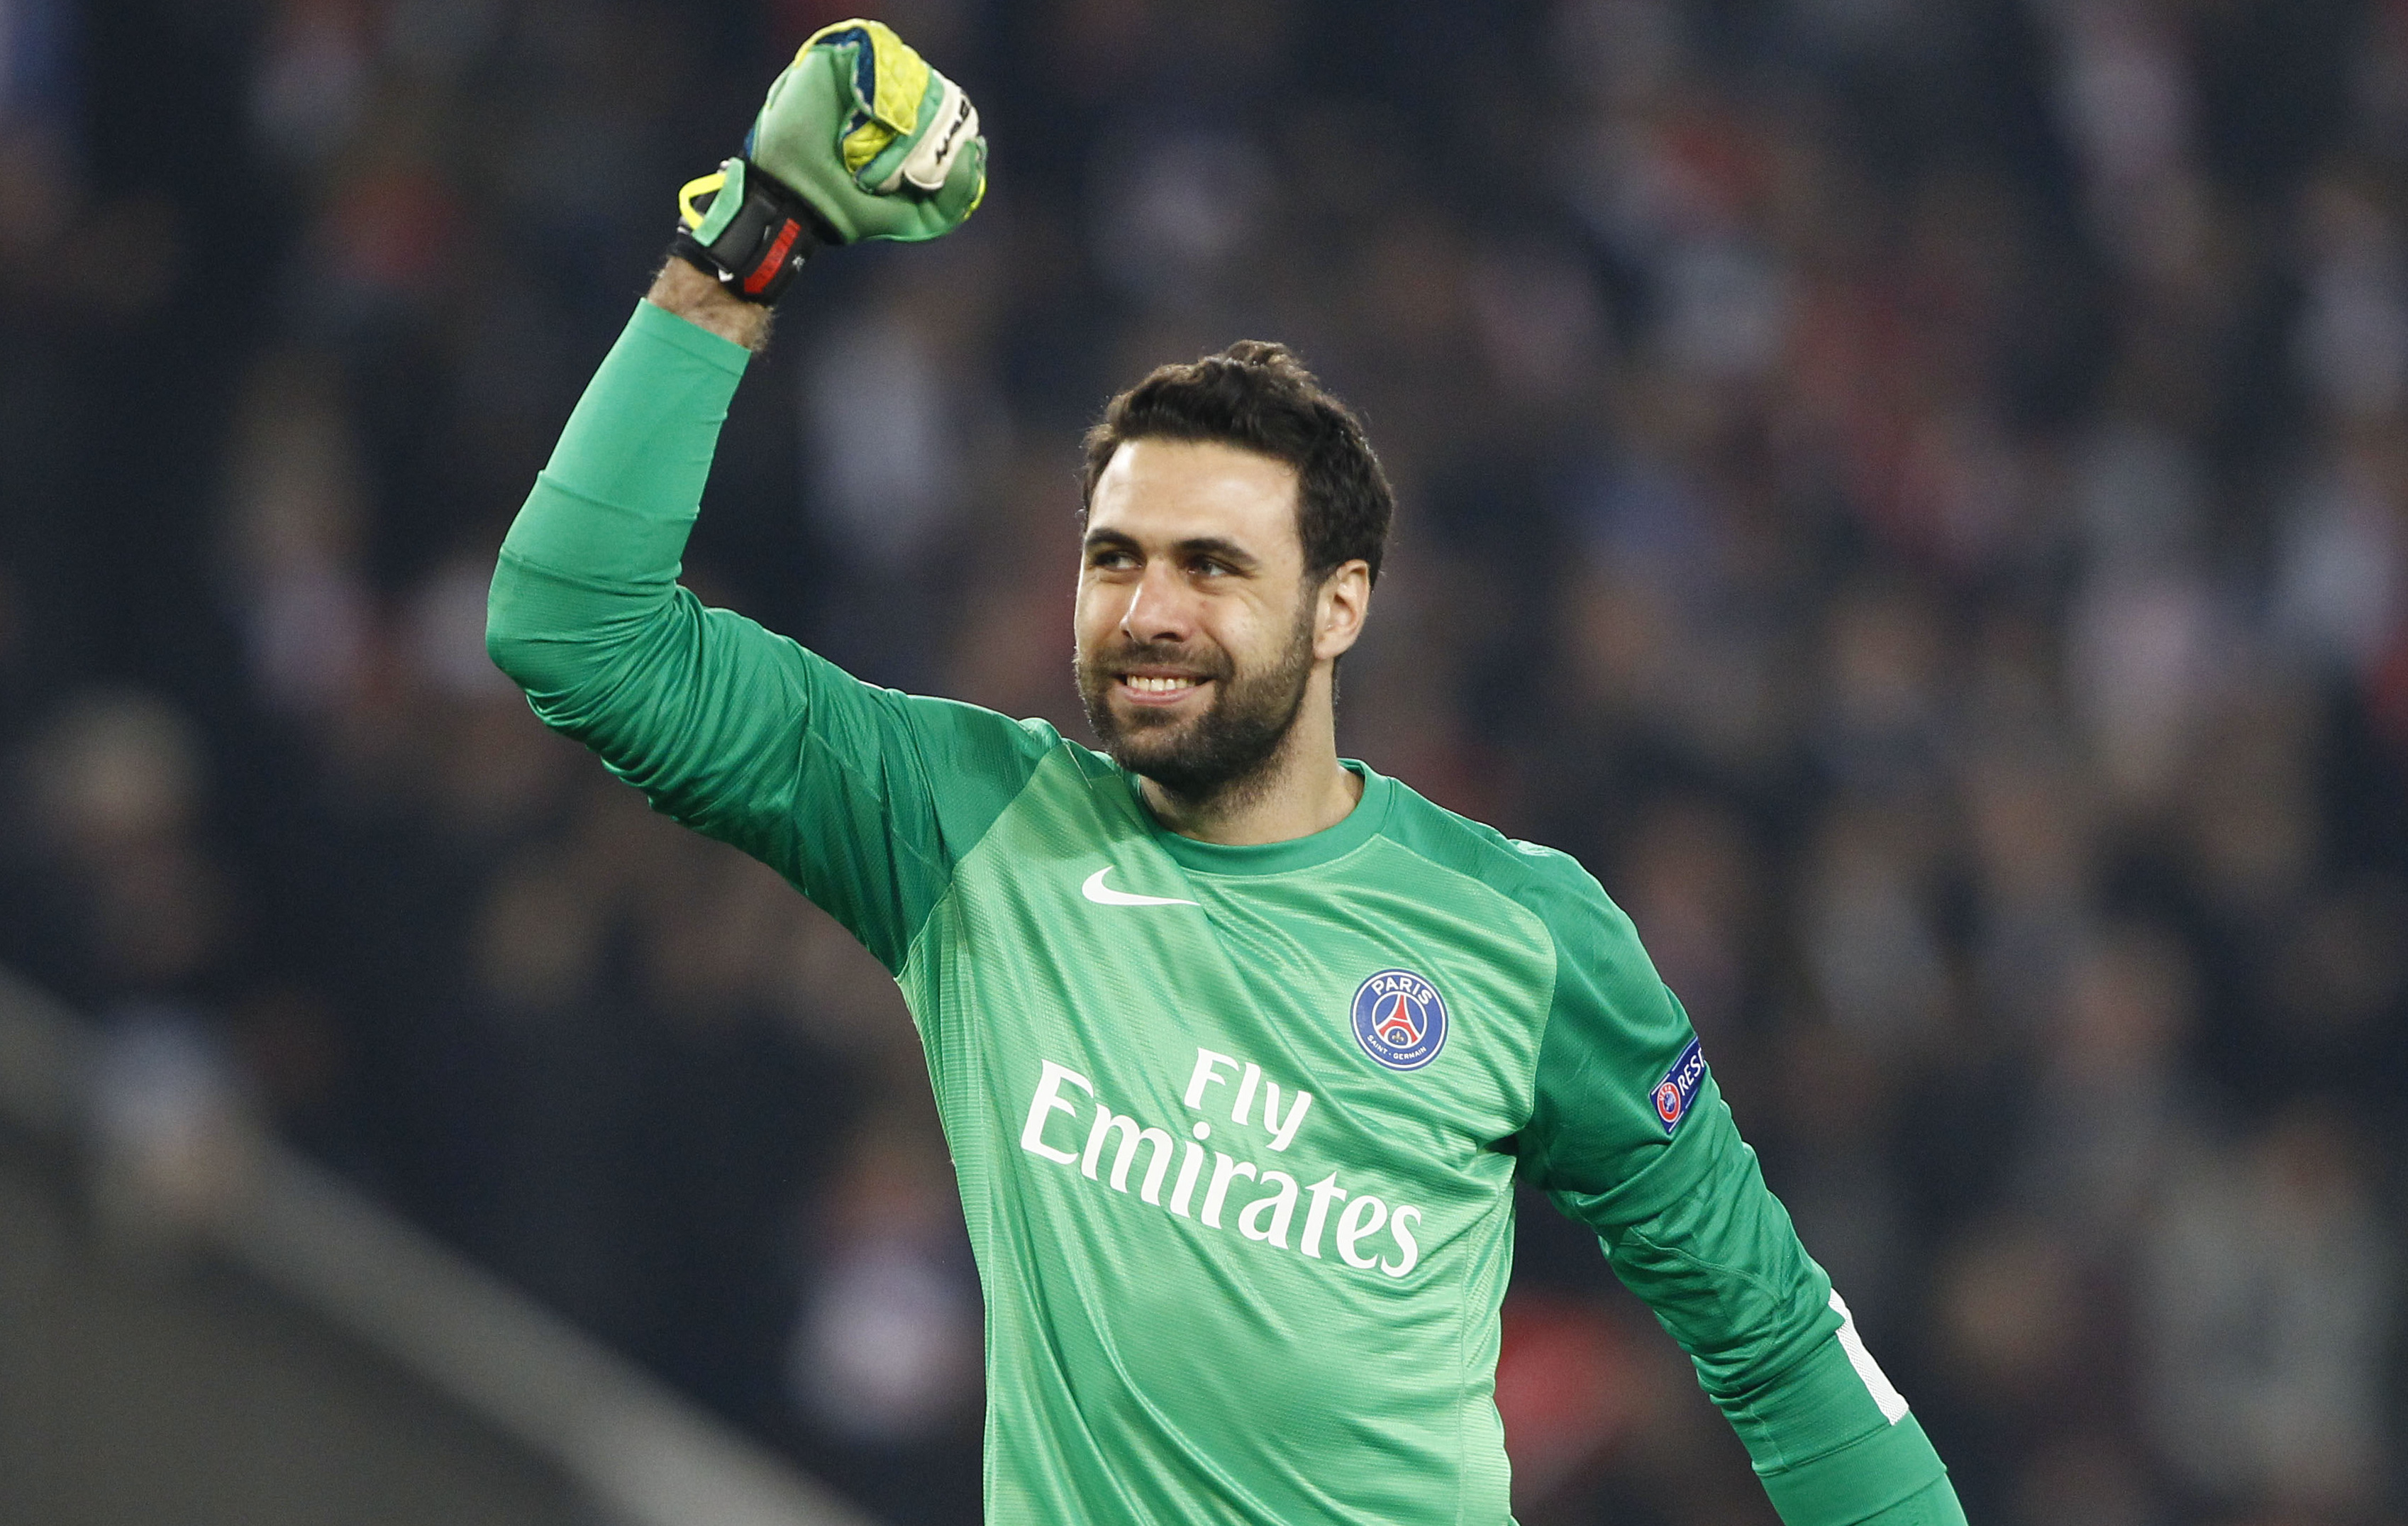 FOOTBALL : Paris Saint Germain vs Bayer Leverkusen - Champions League - 12/03/2014